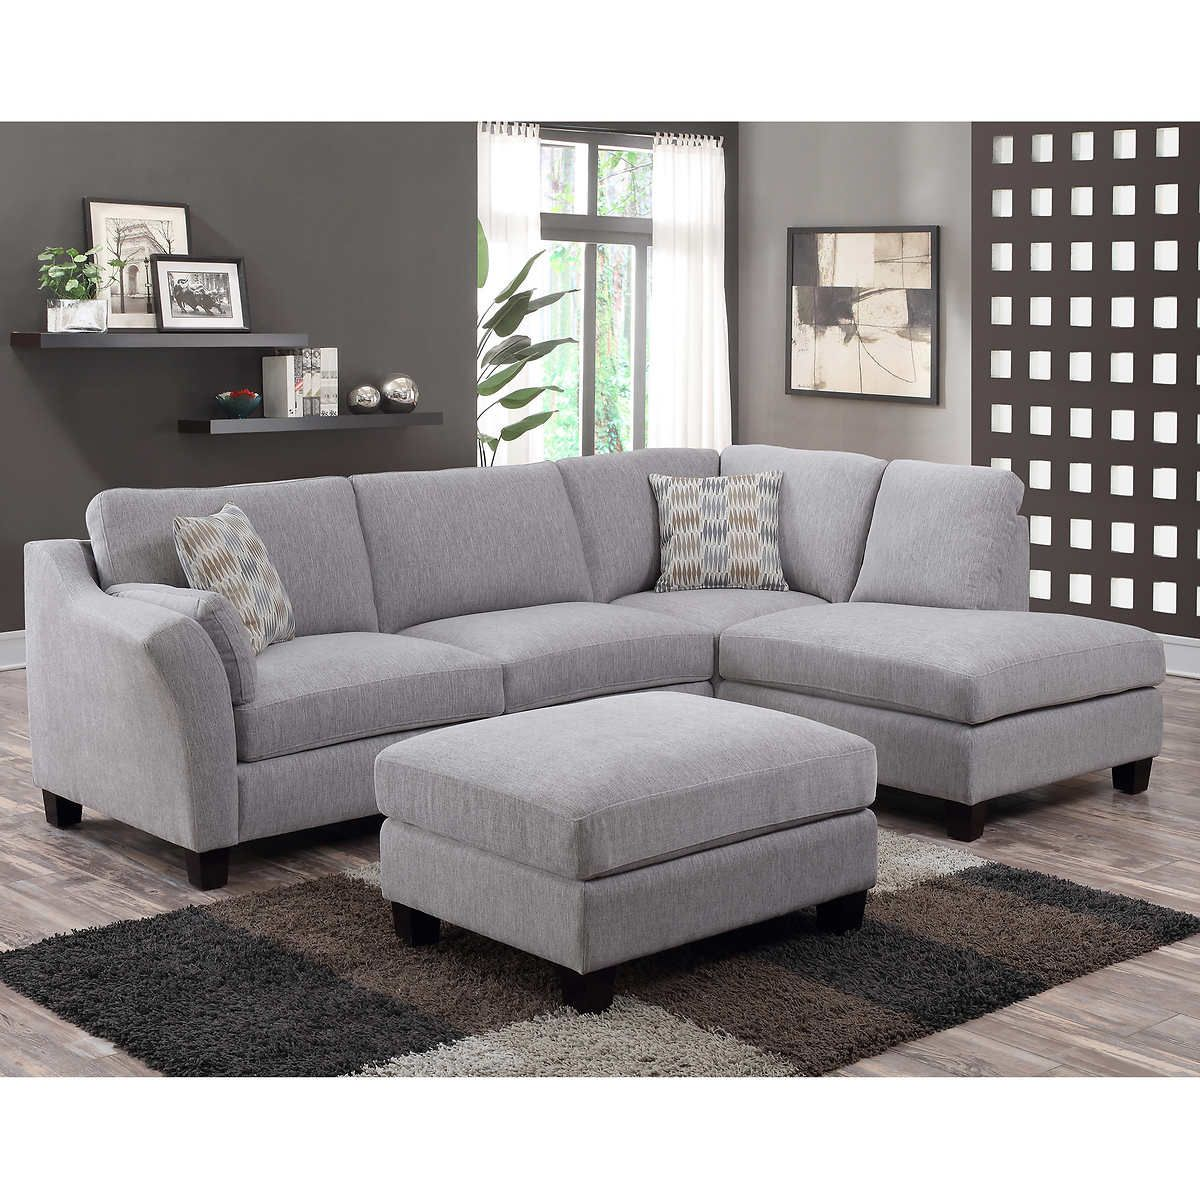 Fabulous Kimsey 2 Piece Fabric Sectional With Ottoman In 2019 Machost Co Dining Chair Design Ideas Machostcouk